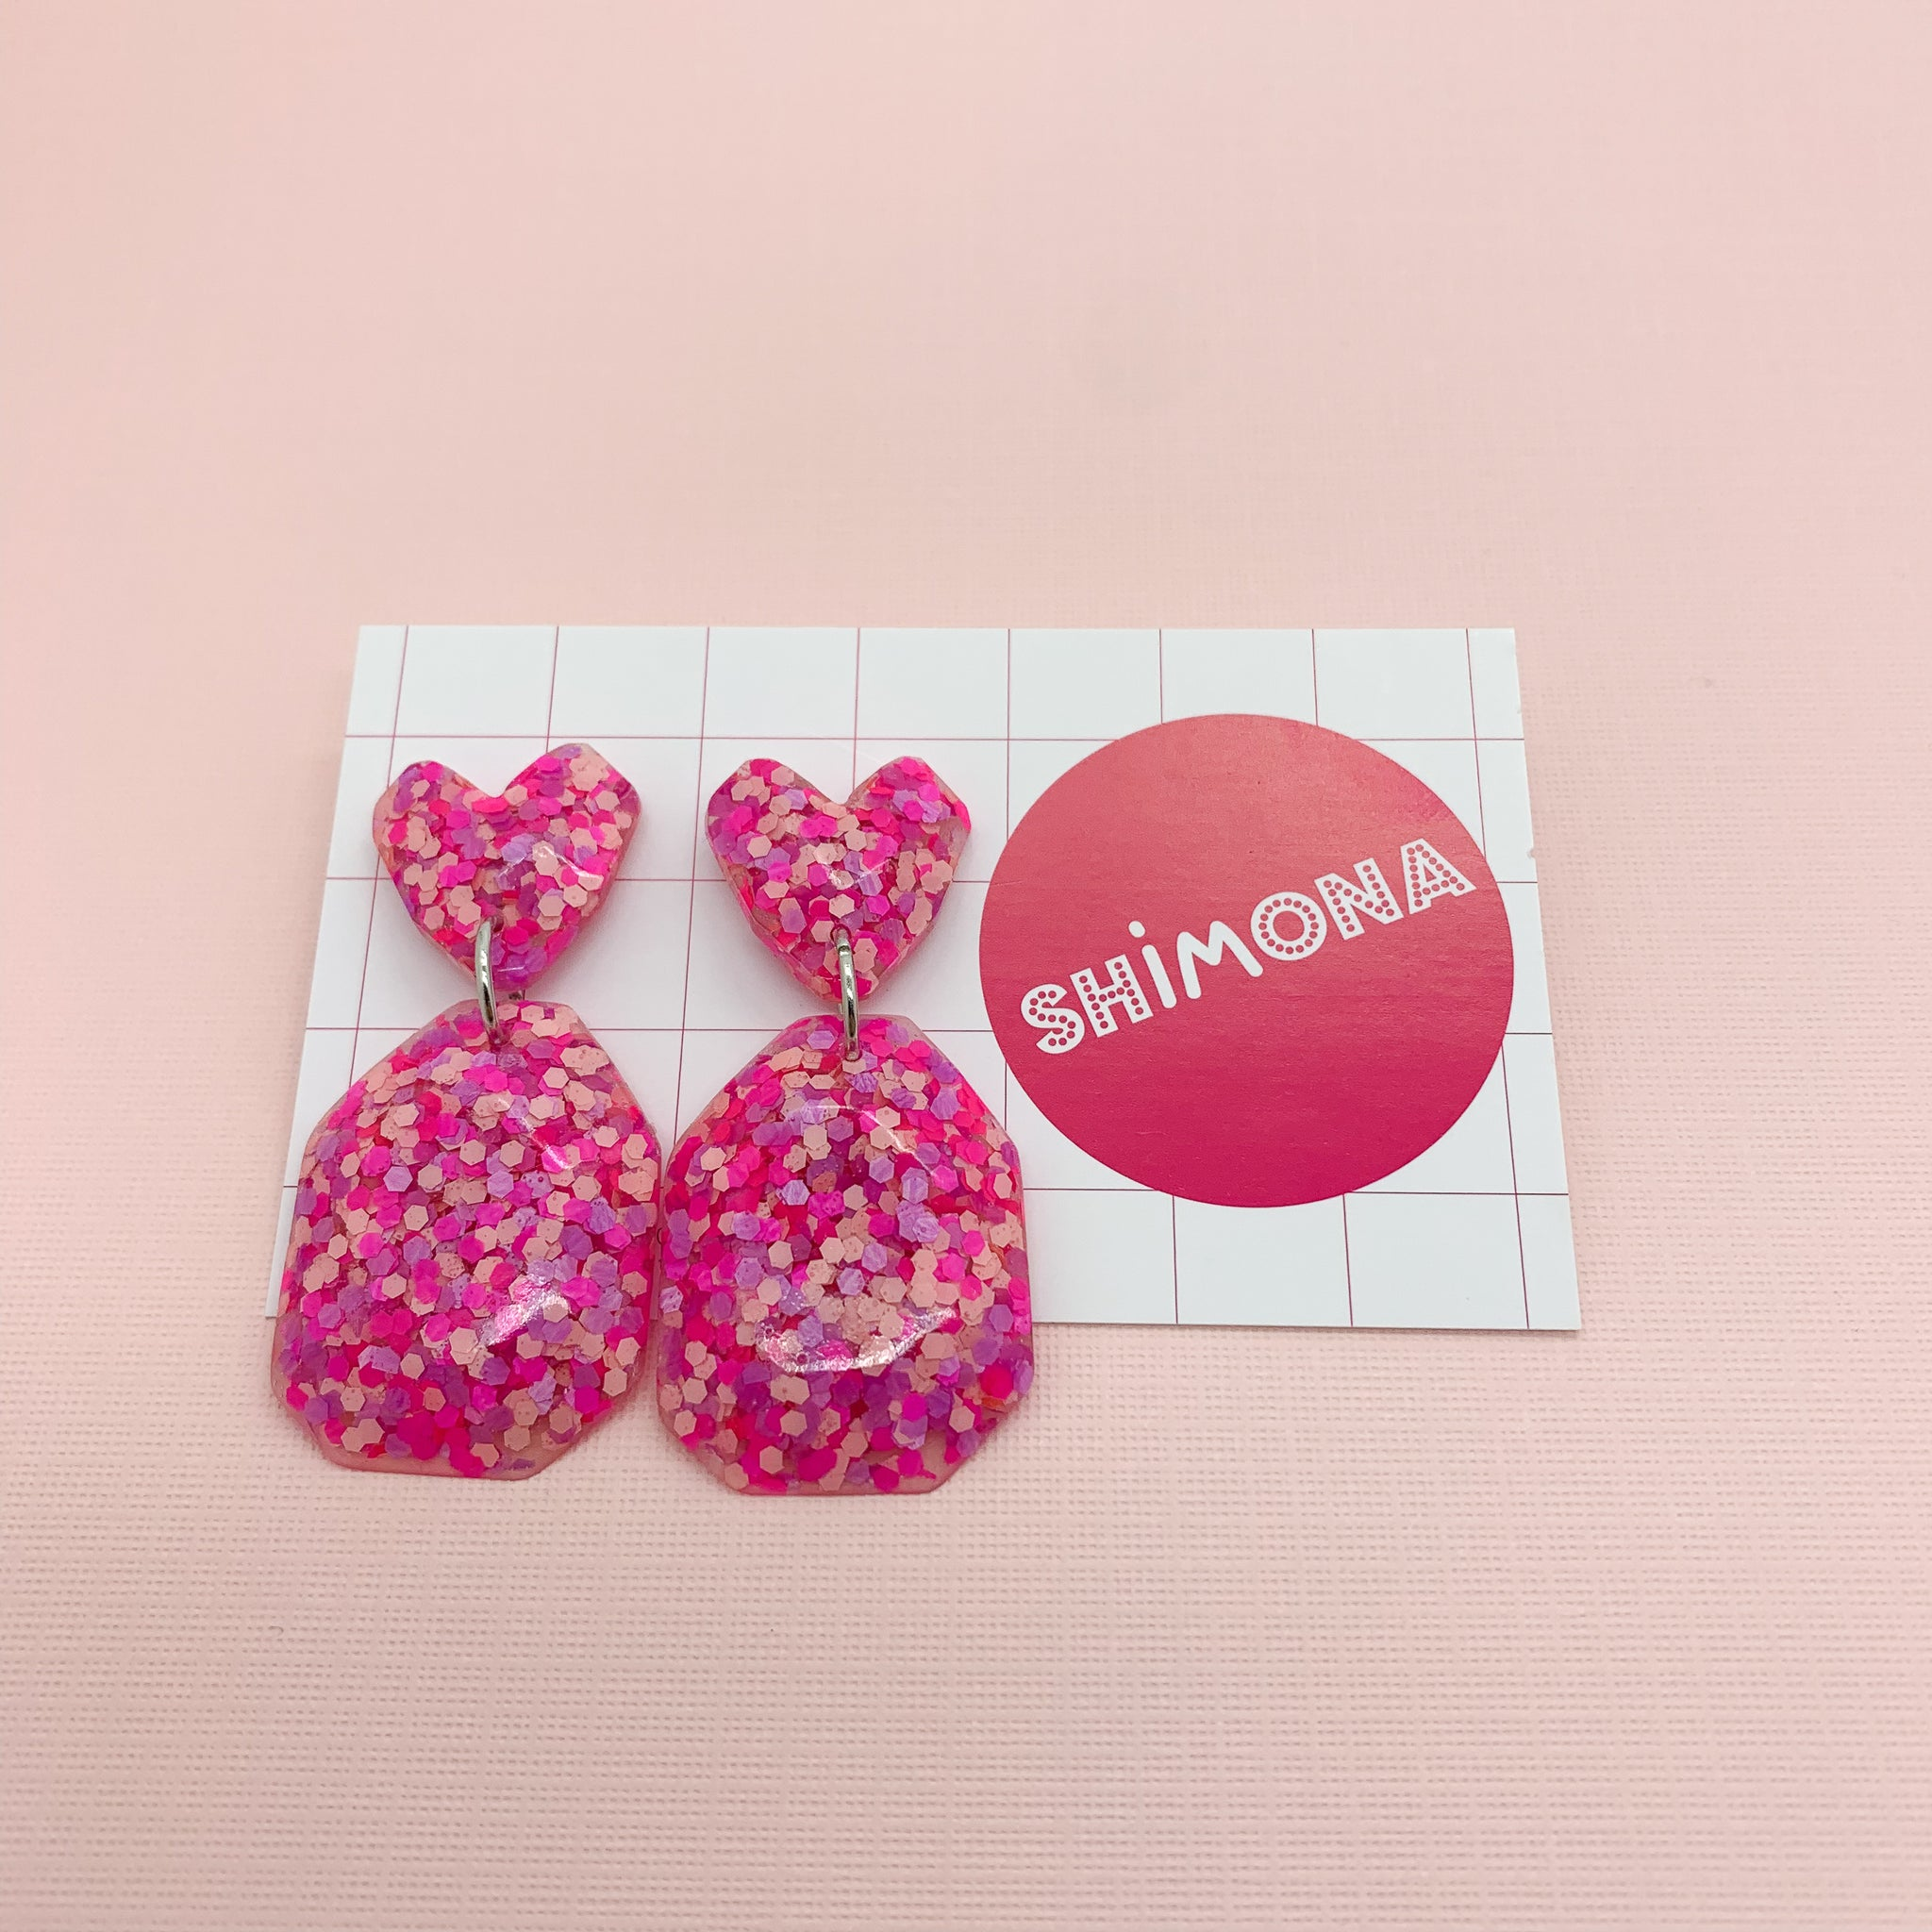 Shimona - Facet Heart Dangle Earrings